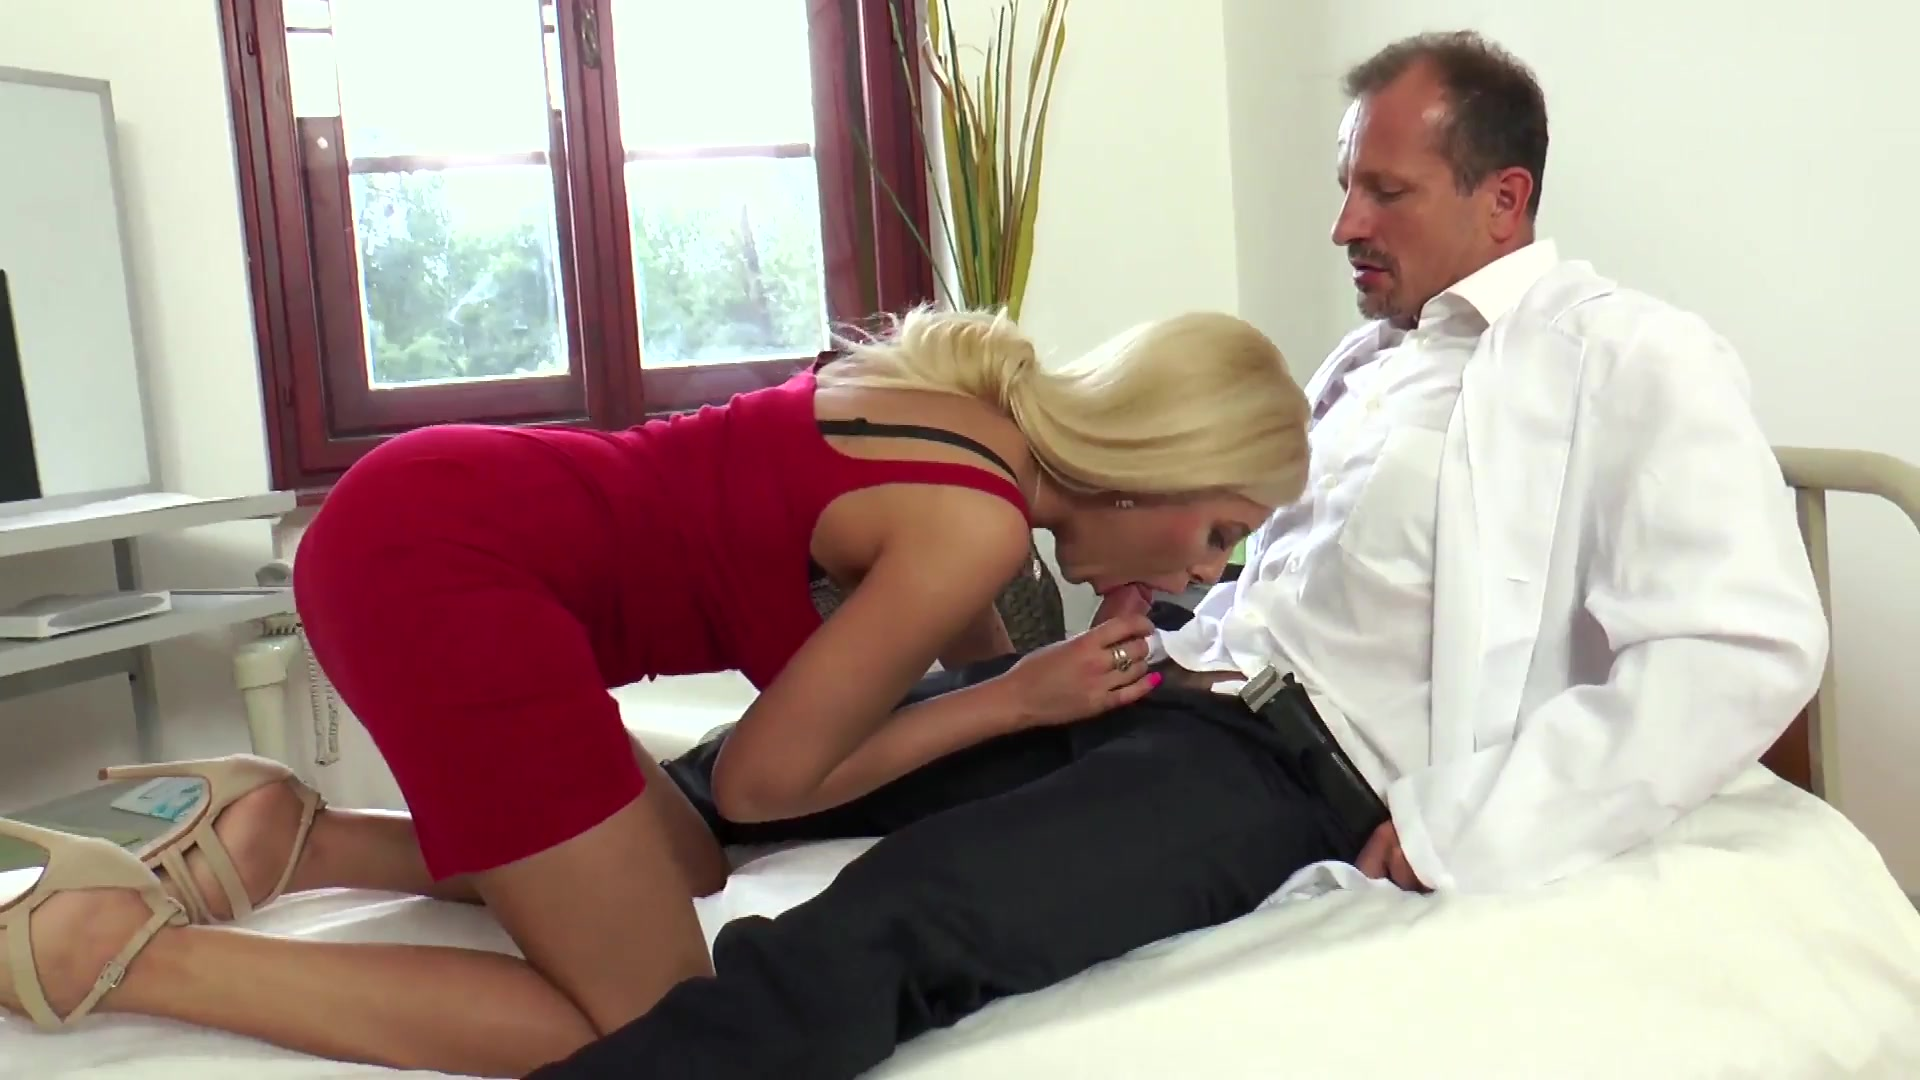 Alex Romero, Donna Bell, Nikky Thorne, Dani Daniels, Kira Queen, Sabby, Lexie Candy, George Uhl, Lauro Giotto, All Sex, Nurses & Doctors, Mature, Lesbian, Blondes, Anal, Fake Patients